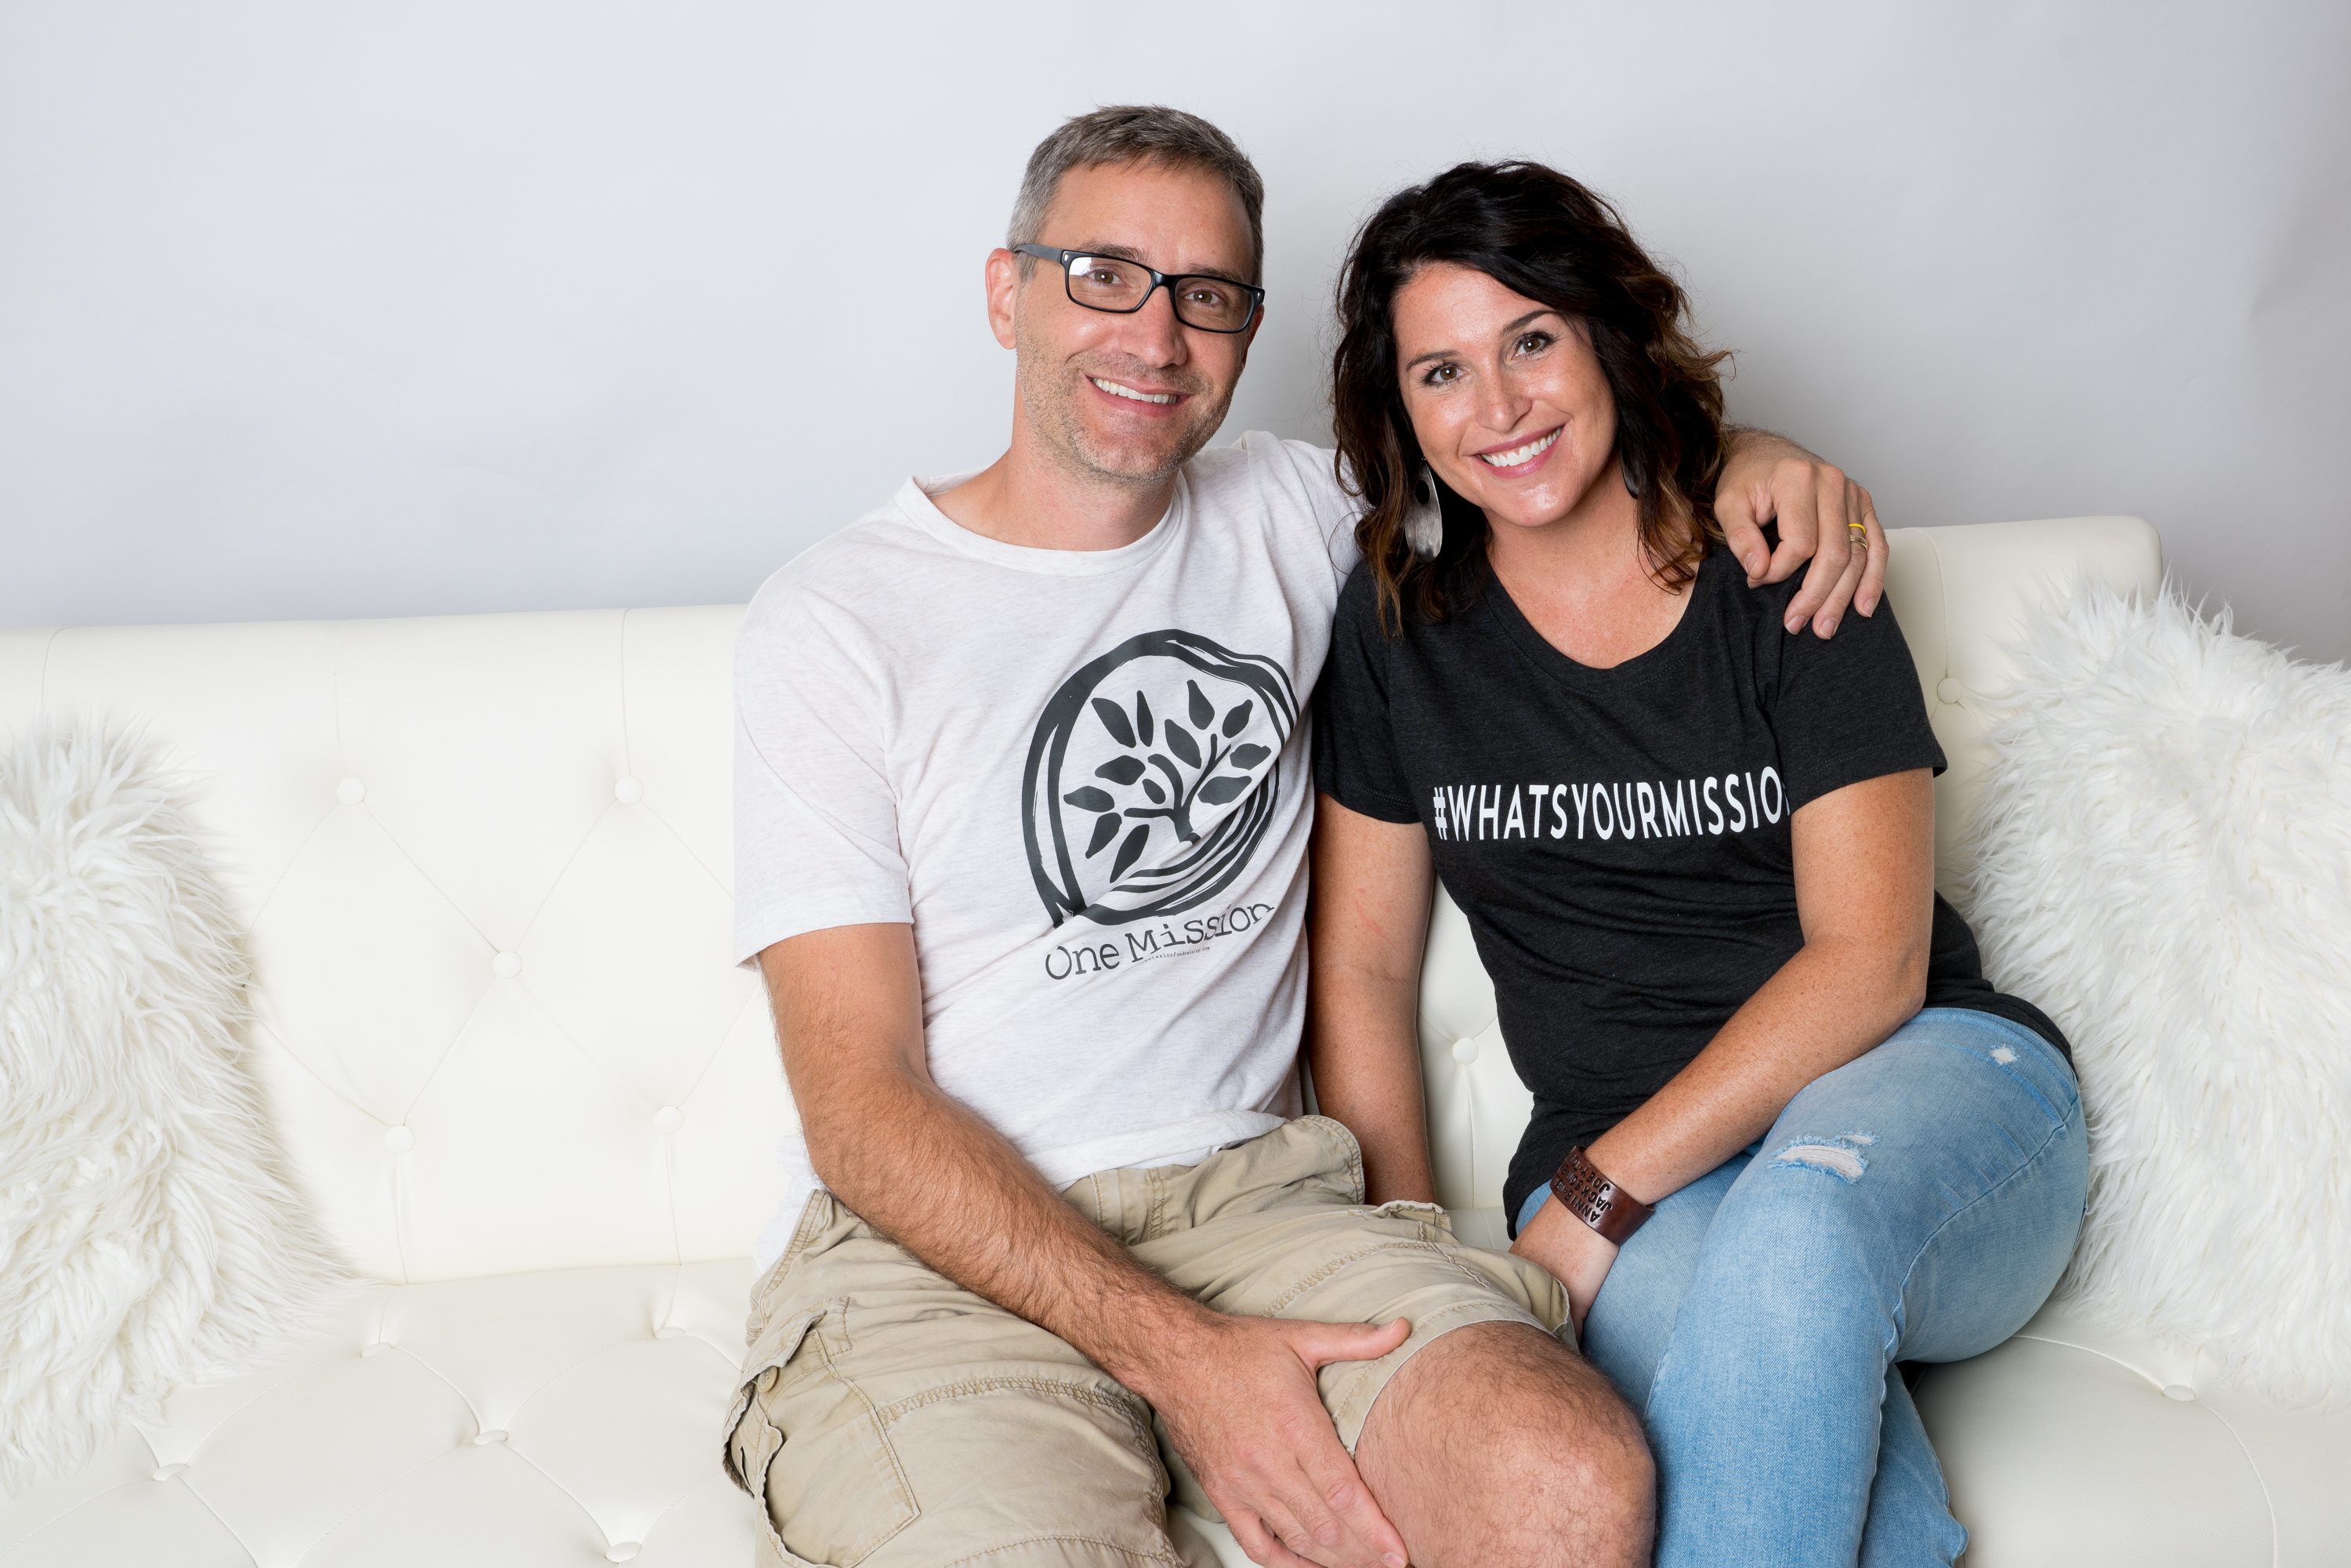 John and Amanda Rhomberg, founders of One Mission Fundraising of Mount Vernon, Iowa.{&amp;nbsp;}<p></p>